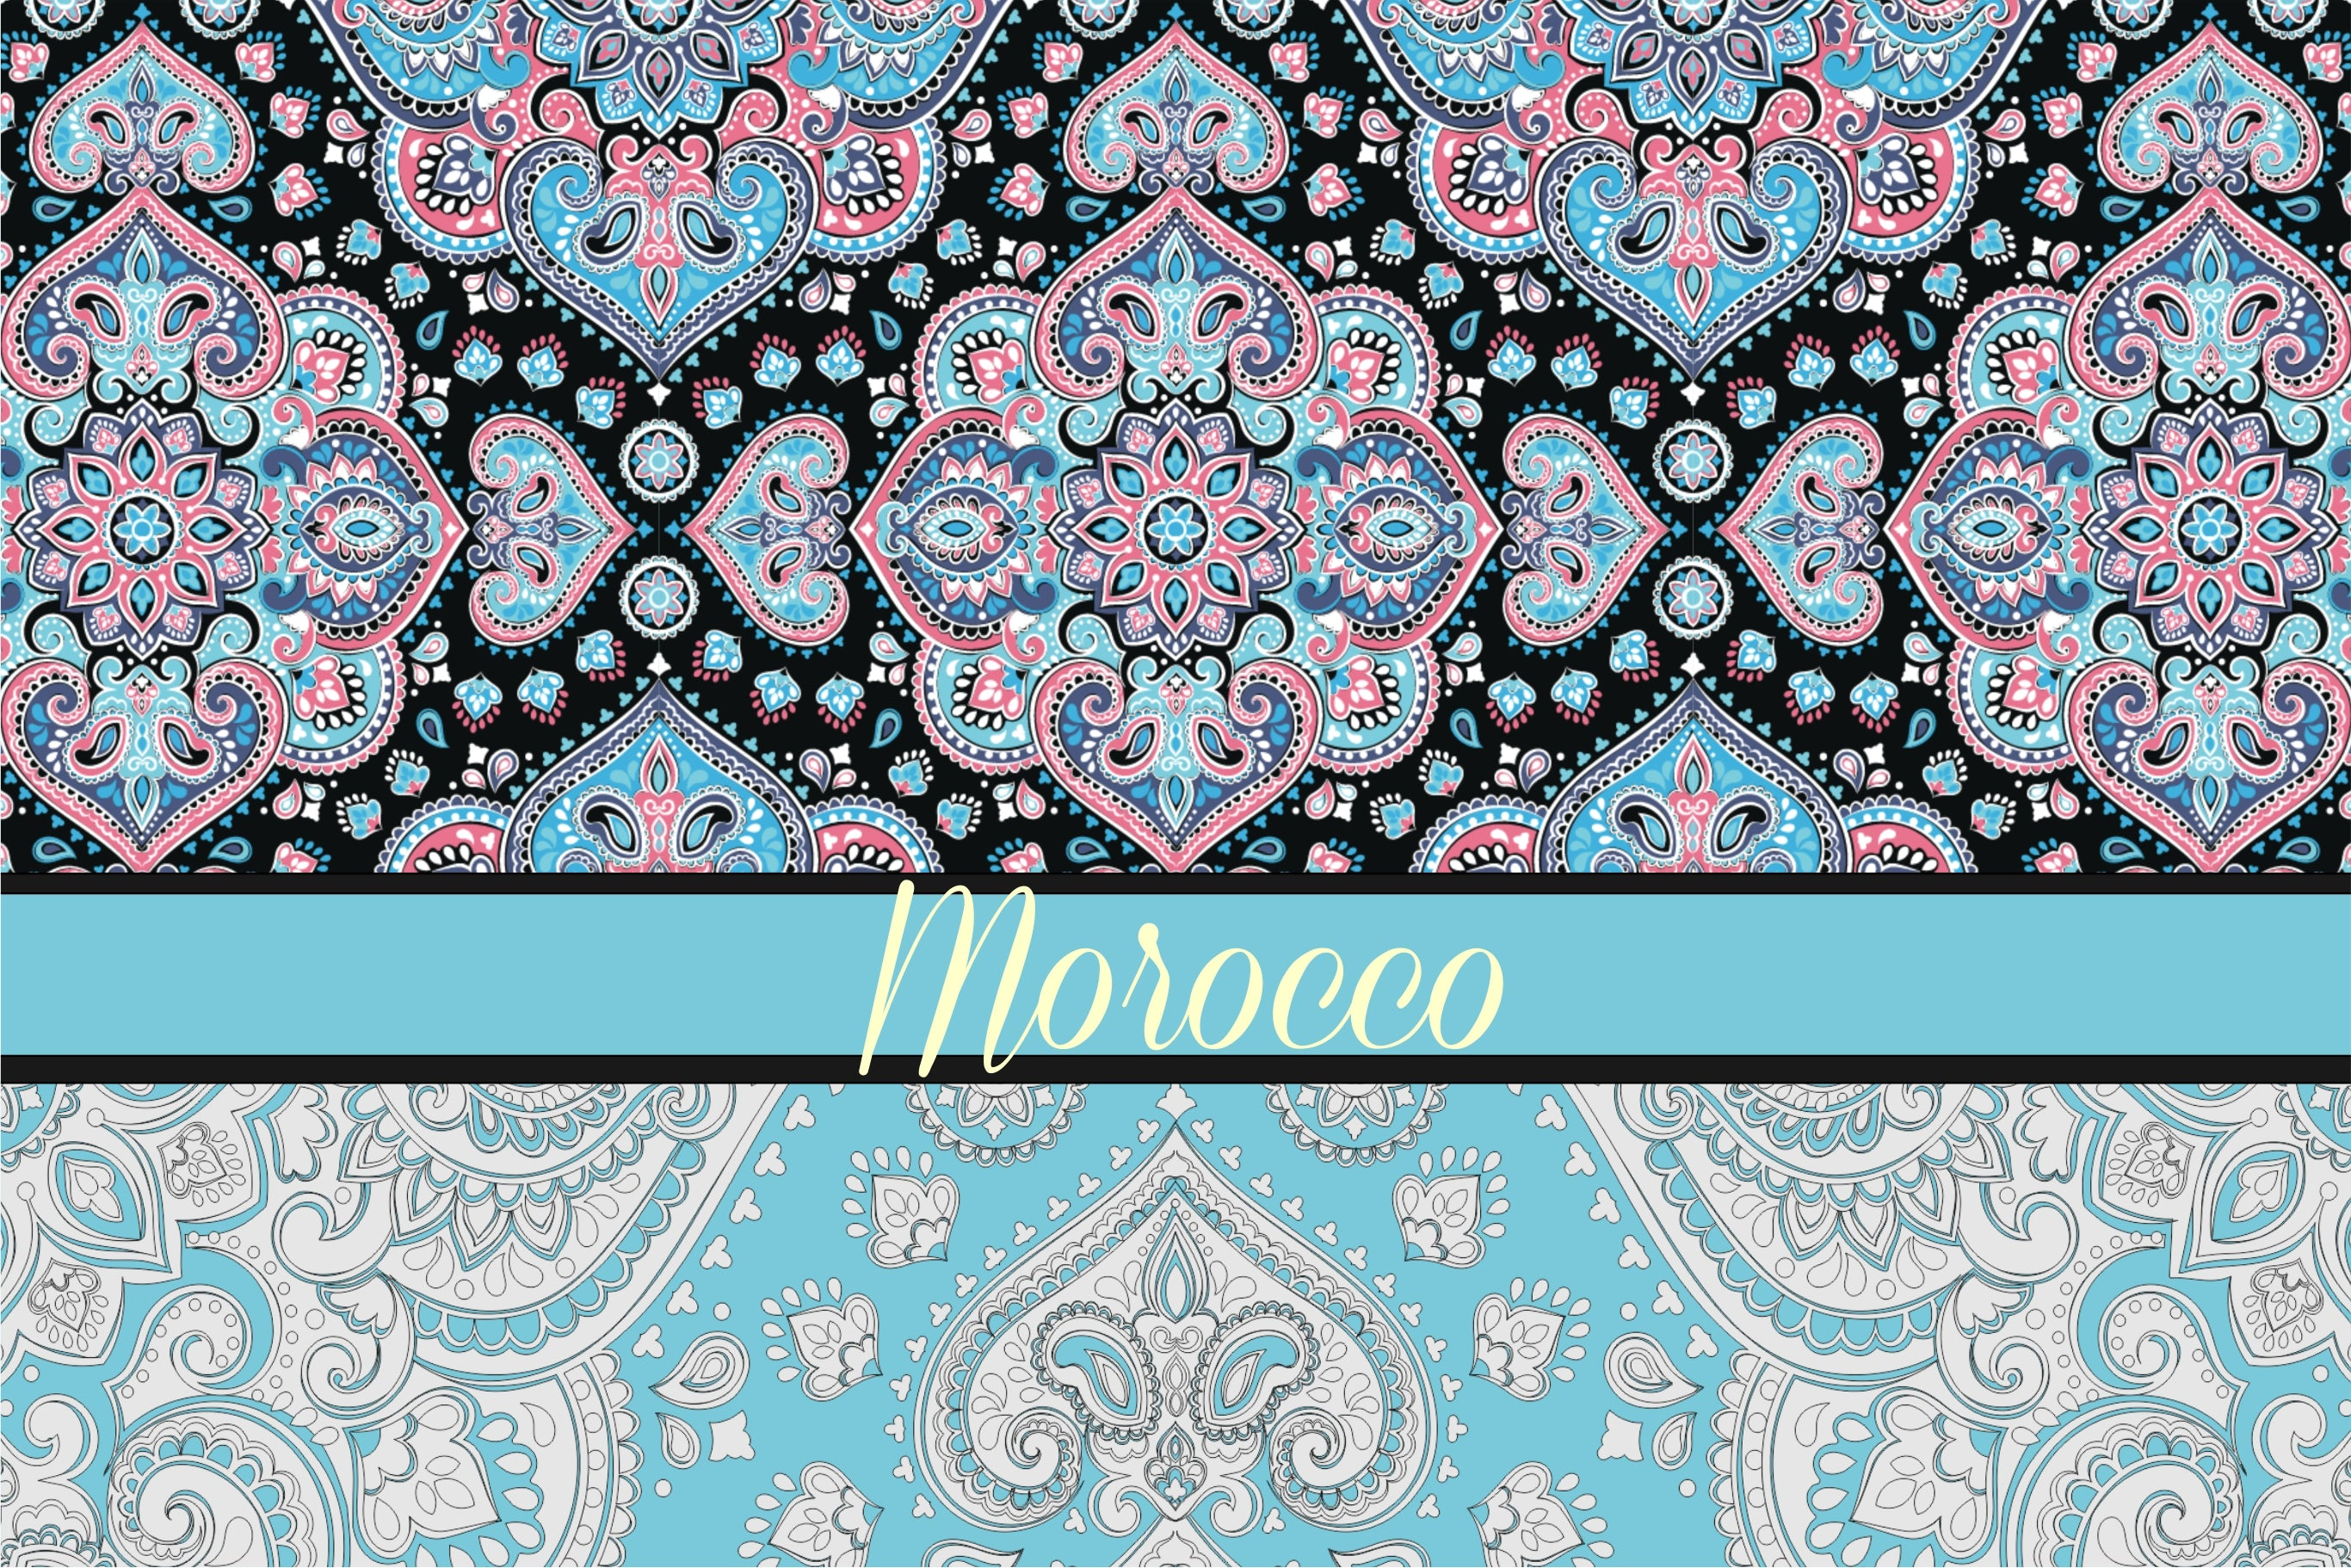 NEW! - Morocco - all styles in BIKINIS and ONEPIECES